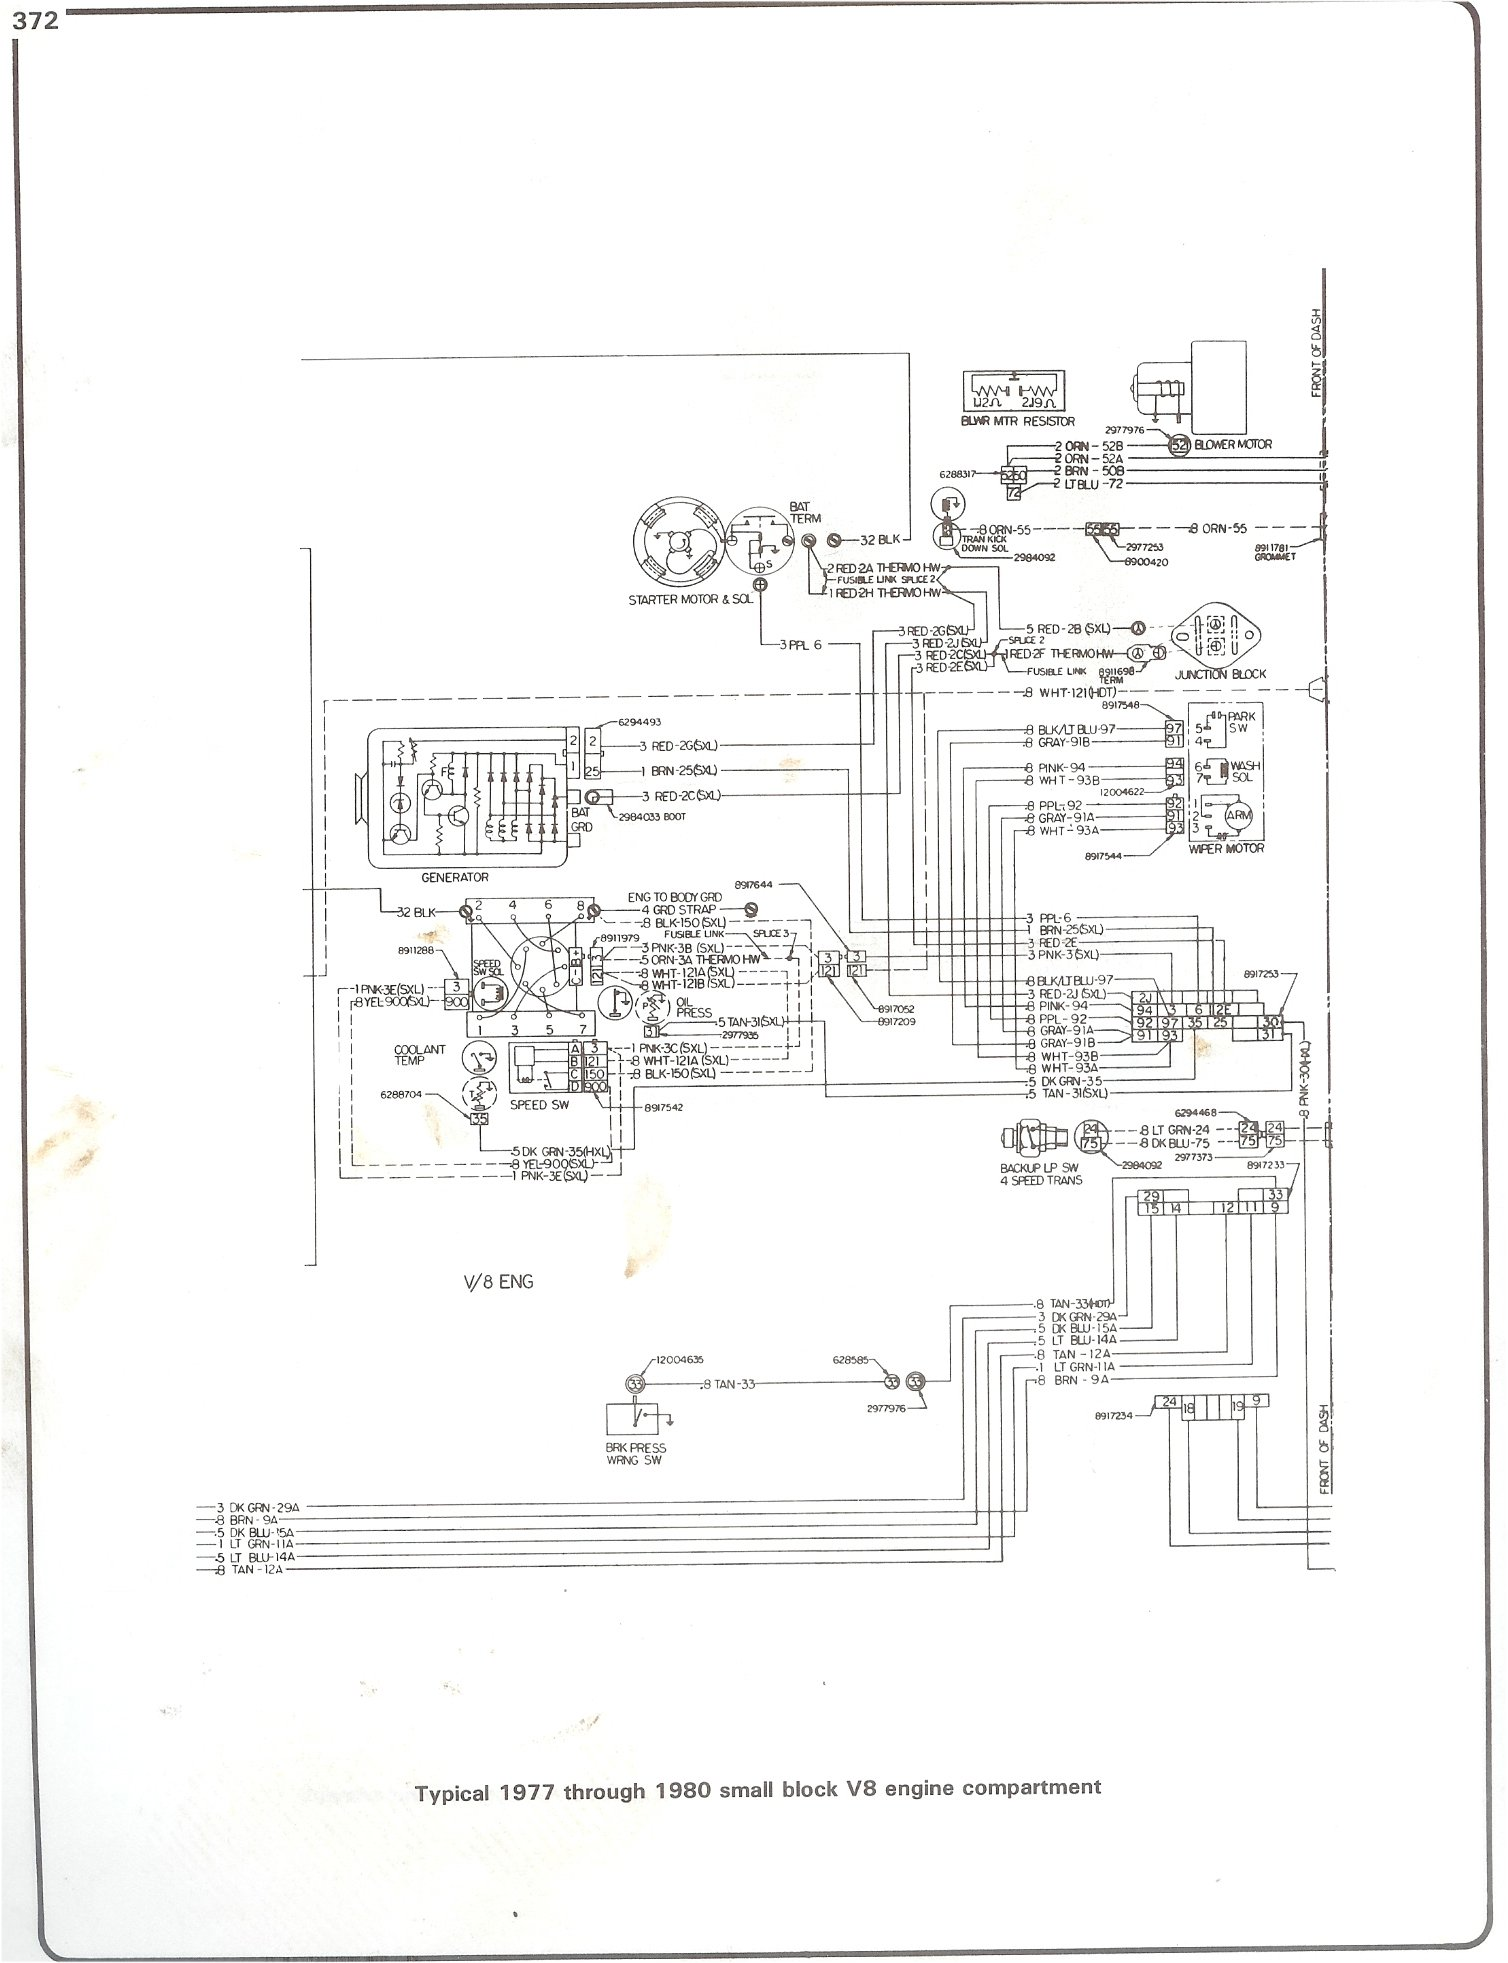 1977 Chevy Truck Wiring Harness | Online Wiring Diagram on 1965 chevrolet truck wiring diagram, 1976 chevrolet truck wiring diagram, 1962 chevrolet truck wiring diagram, 1977 chevrolet truck brochure, 1971 chevrolet truck wiring diagram, 1977 chevrolet truck parts, 1956 chevrolet truck wiring diagram, 1977 chevrolet g30 camper van, 1954 chevrolet truck wiring diagram, 1948 chevrolet truck wiring diagram, 1959 chevrolet truck wiring diagram, 1929 chevrolet truck wiring diagram, 1969 chevrolet truck wiring diagram, 1968 chevrolet truck wiring diagram, 1979 chevrolet truck wiring diagram, 1974 chevrolet truck wiring diagram, 1996 chevrolet truck wiring diagram, 1957 chevrolet truck wiring diagram, 1998 chevrolet truck wiring diagram, 1972 chevrolet truck wiring diagram,